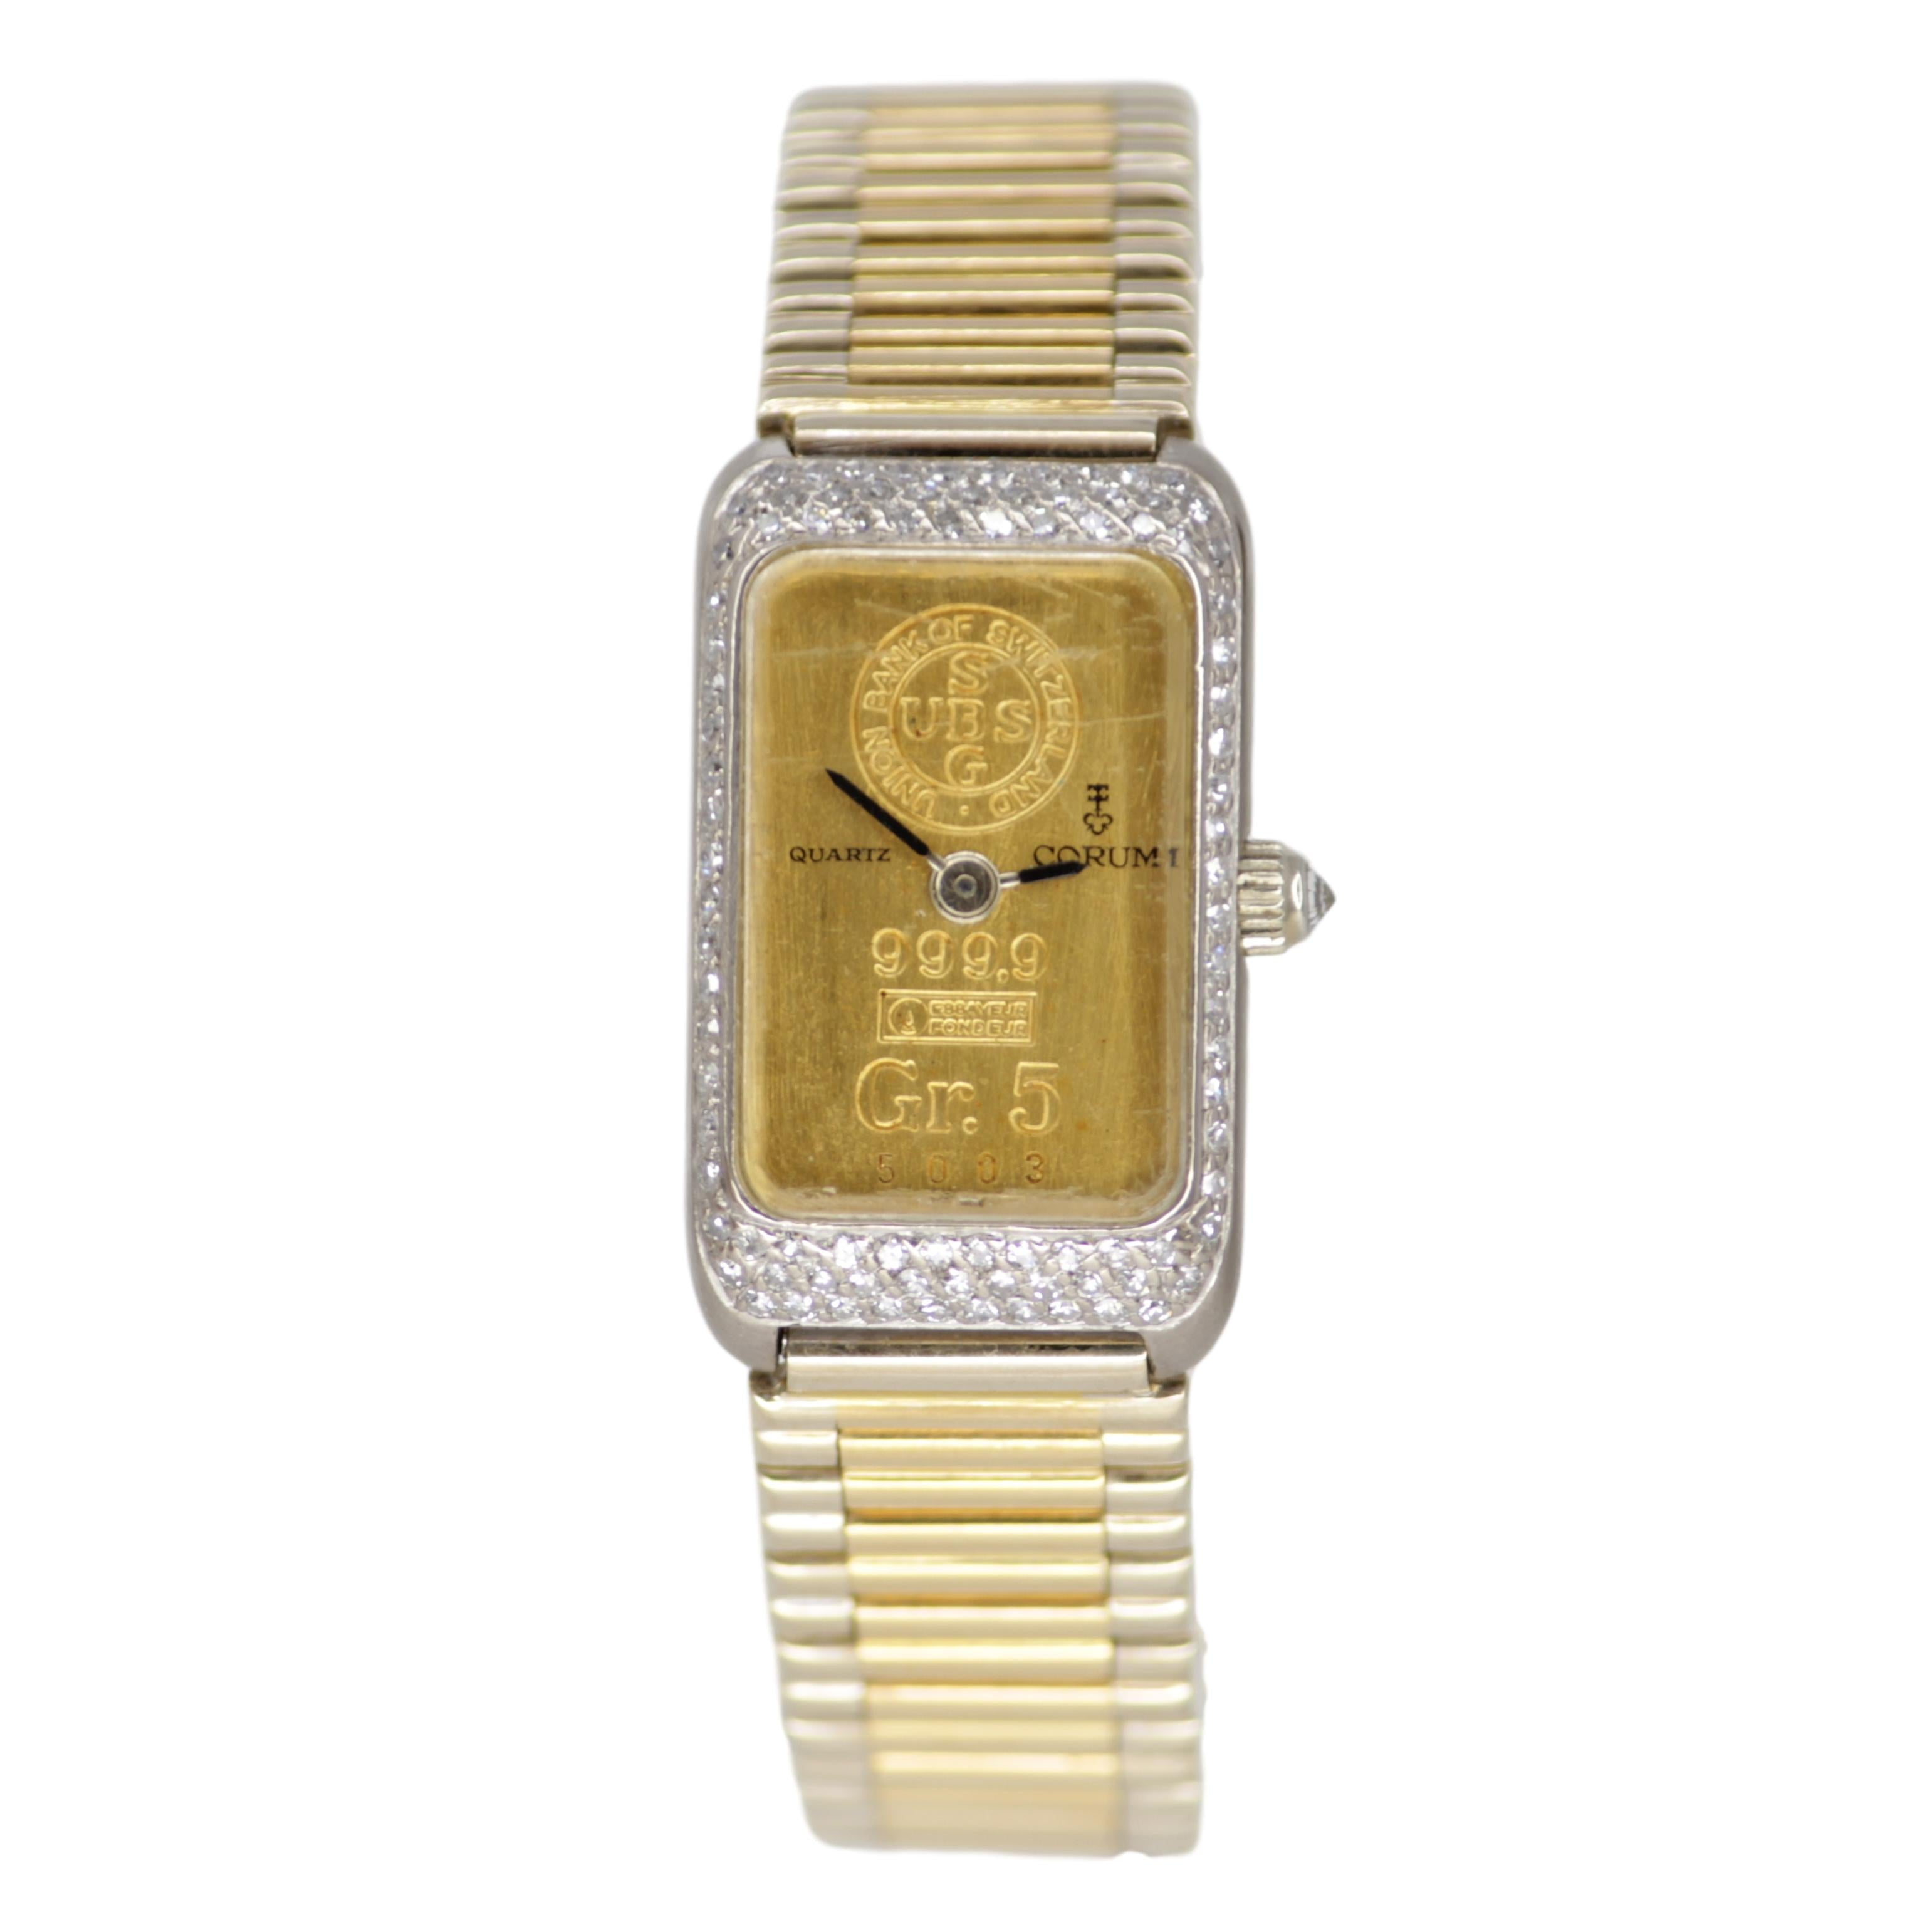 Corum Ingot Gold Bar Ladies 18k Yellow Gold Watch